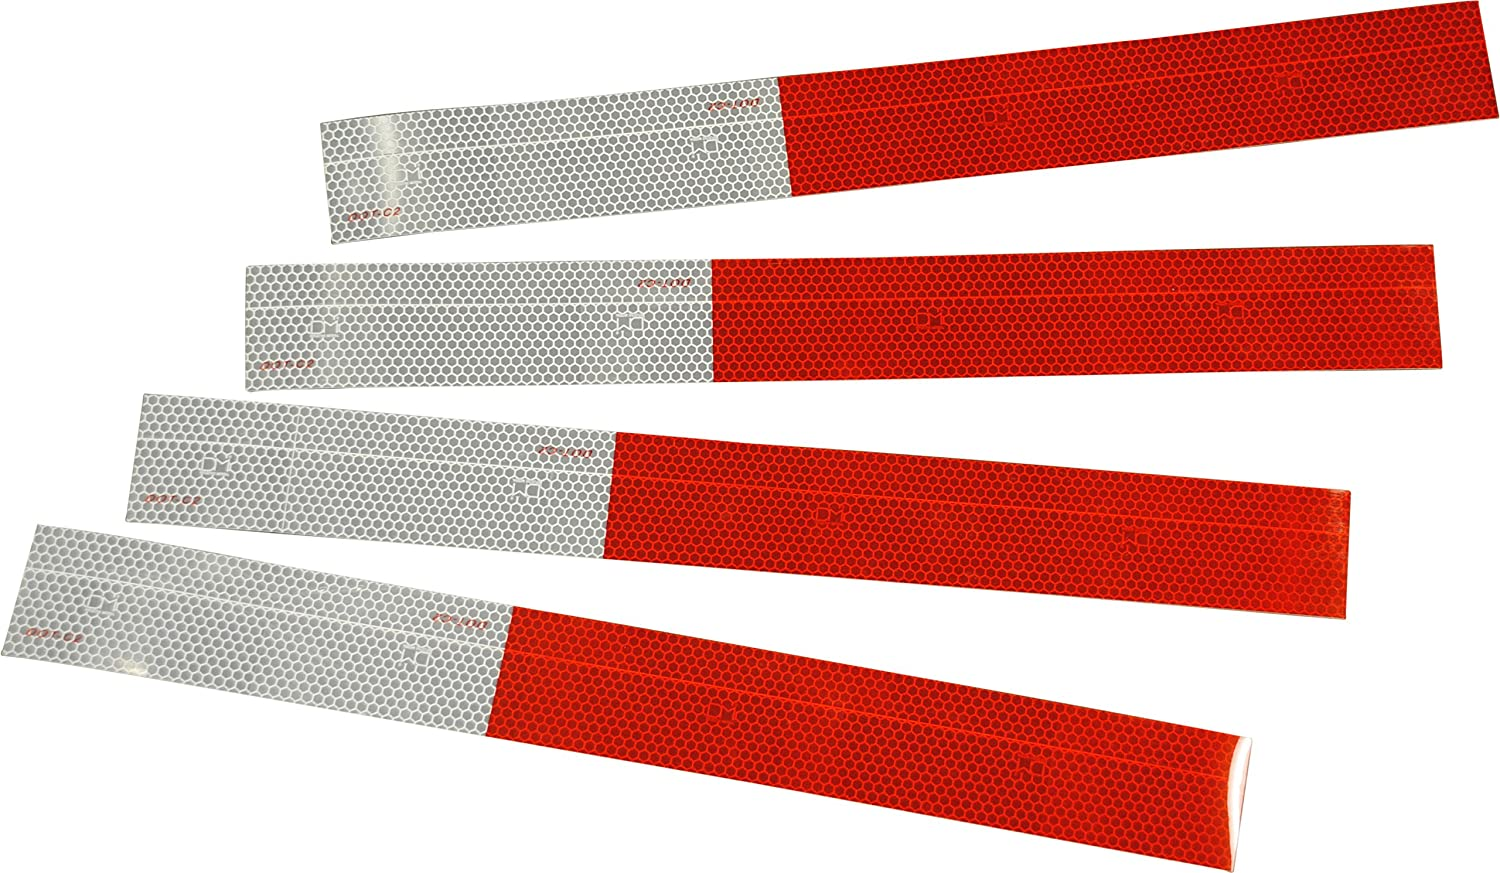 10 Year Metalized Single Layer DOT-C2 Reflective Conspicuity Tape Each strip 11 Red // 7 White USA seller 4 Pack of 18 Strips 967 candle power